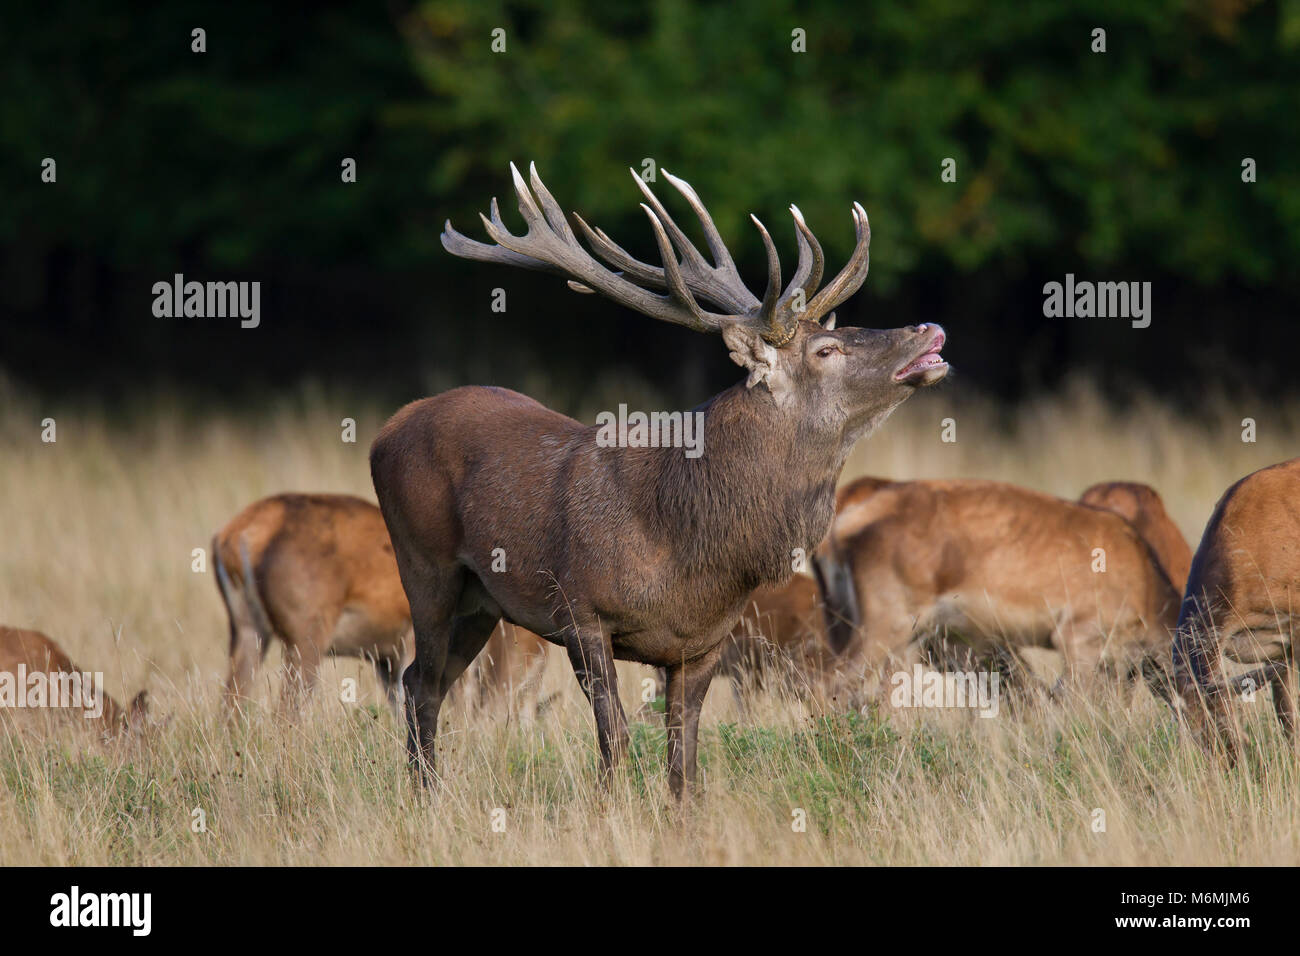 Red deer (Cervus elaphus) hinds and stag exhibiting the flehmen response by wrinkling its nose and lifting its lips - Stock Image